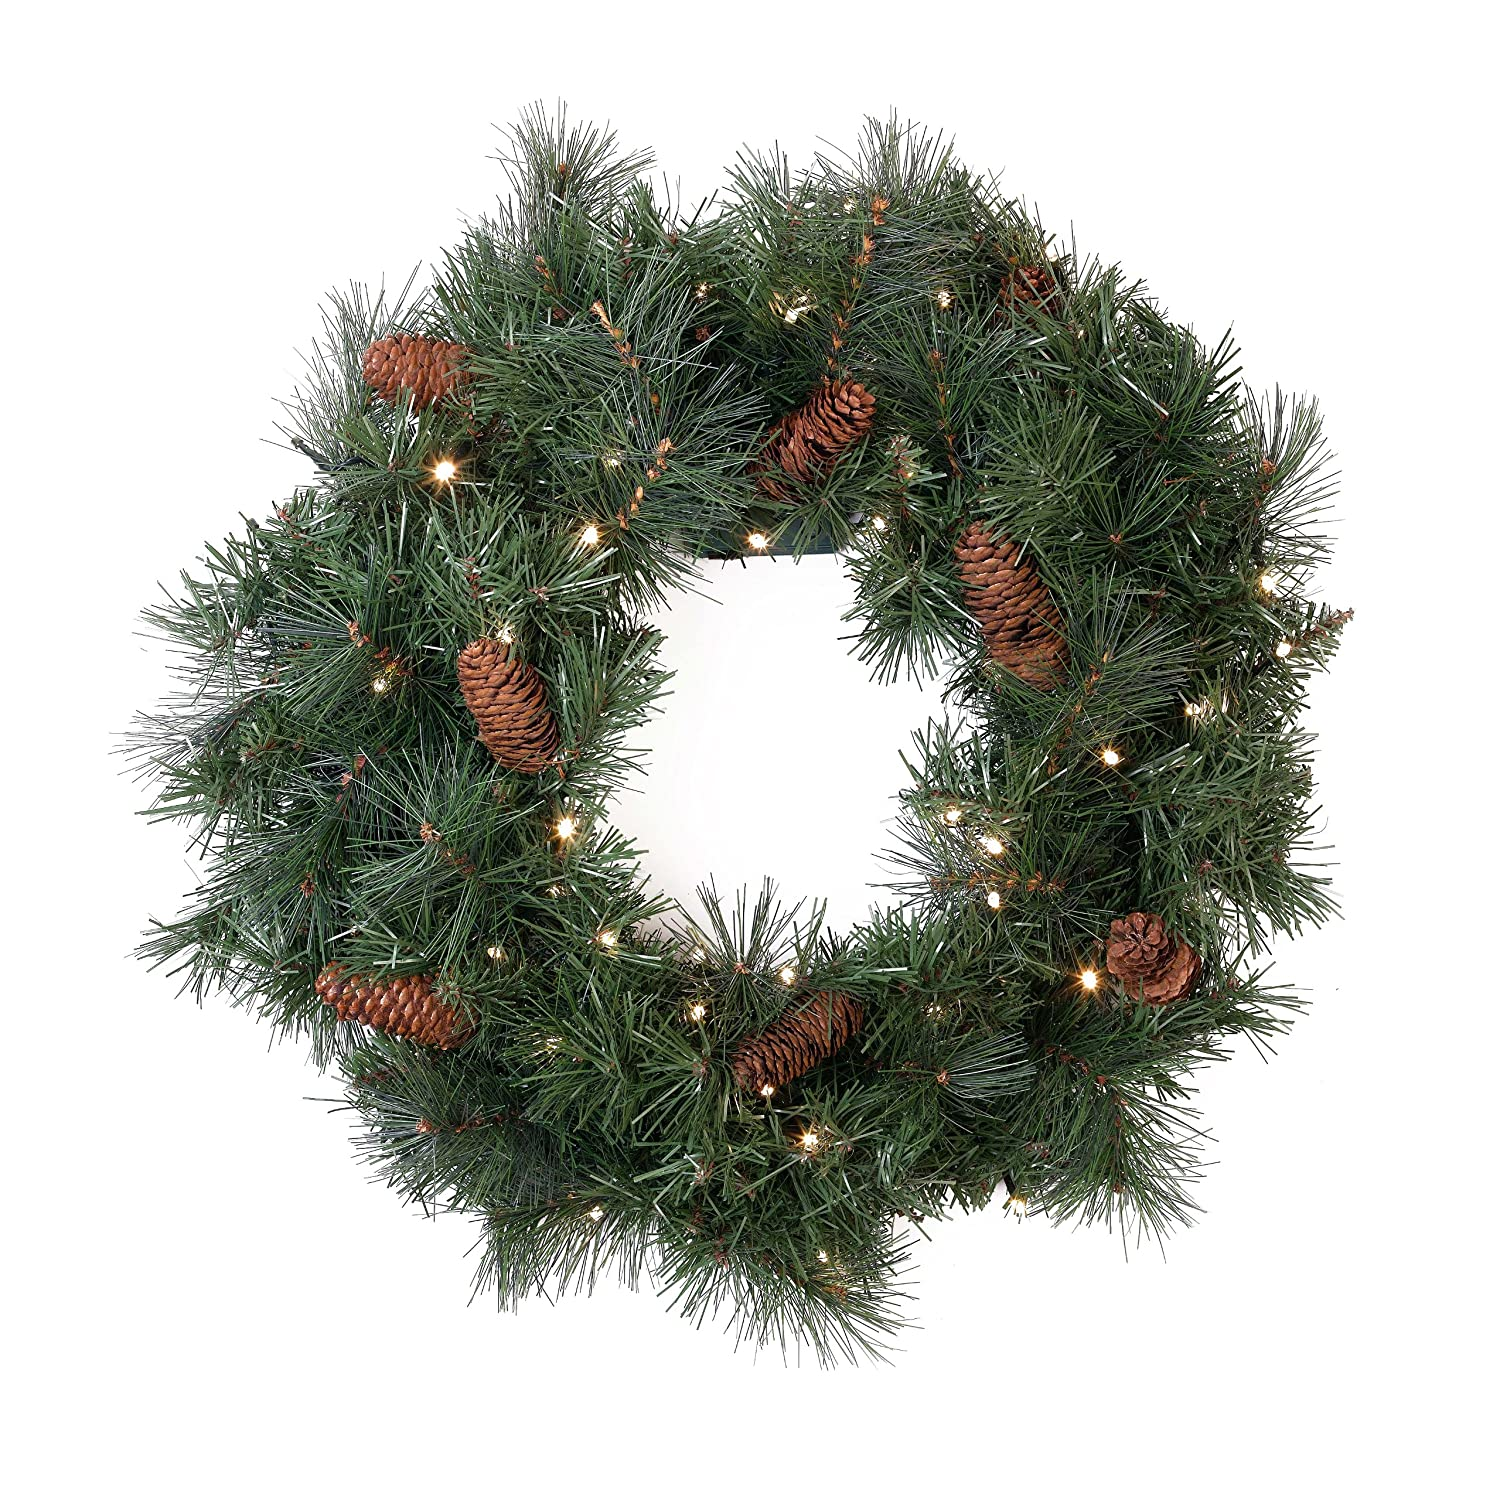 Bethlehem lights wreath battery operated - 24 Georgetown Spruce Battery Operated Led Christmas Wreath W Color Changing Lights